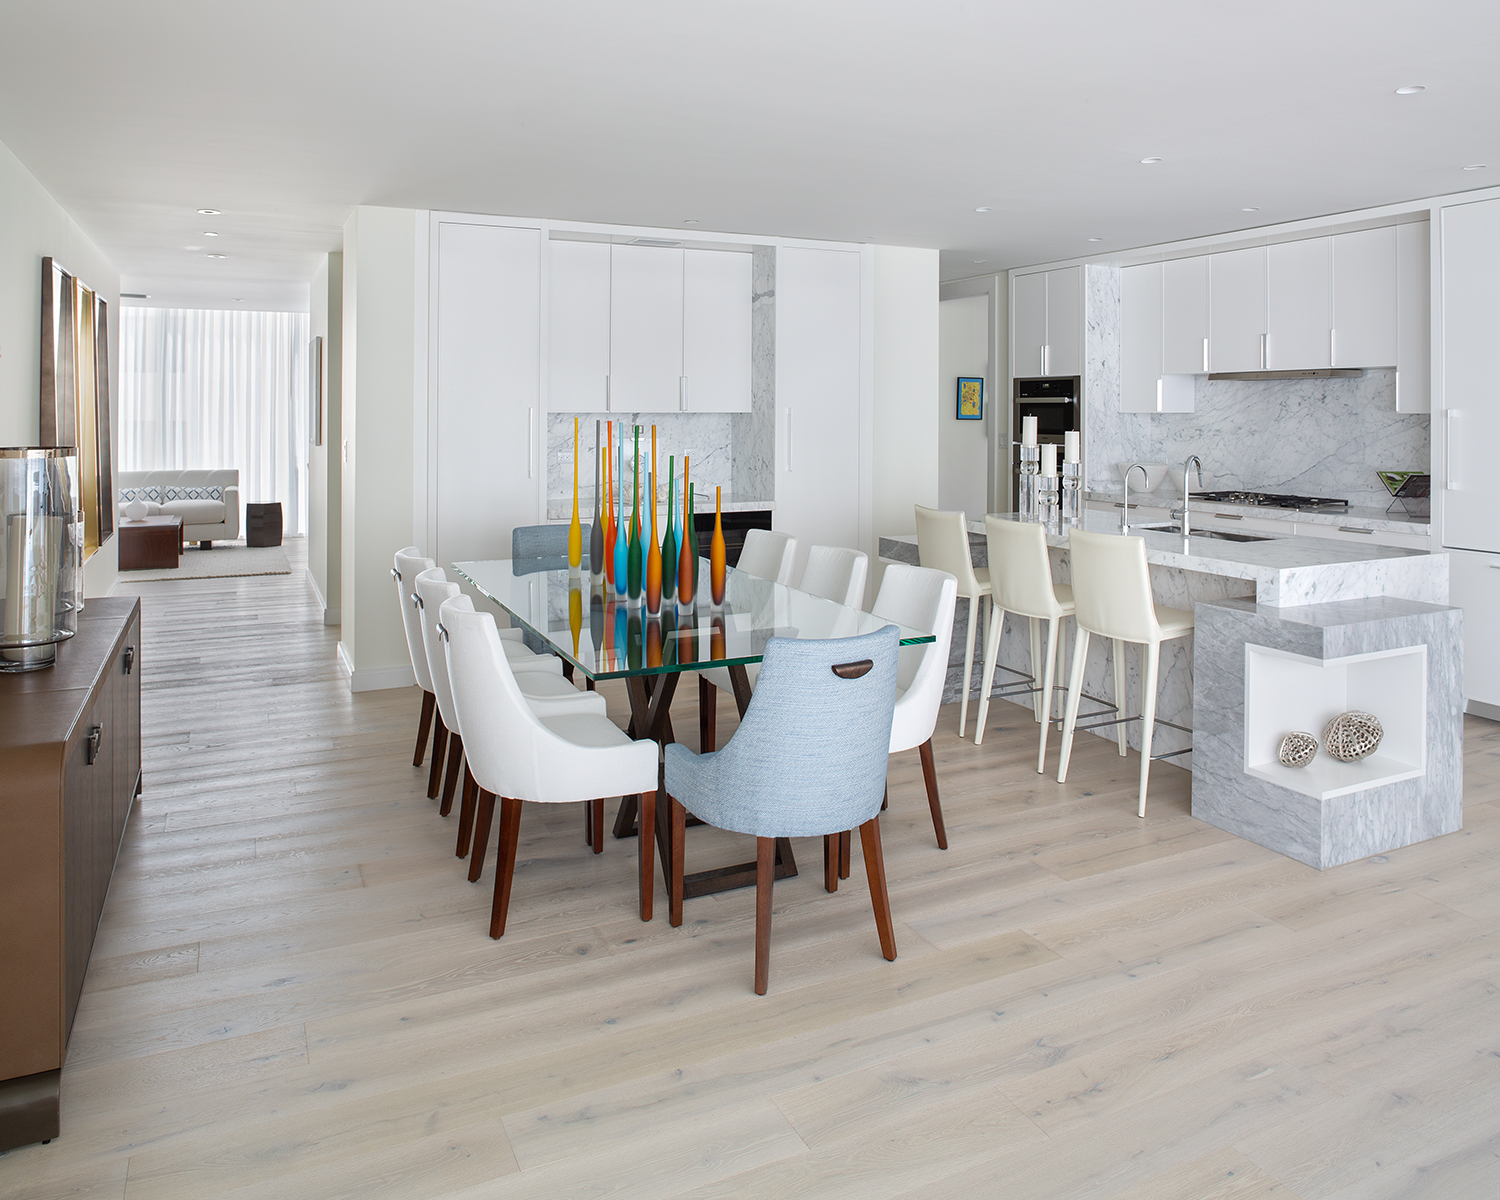 Take A First Look Inside DDG's Waterfront Palm Beach Condo 3550 South Ocean